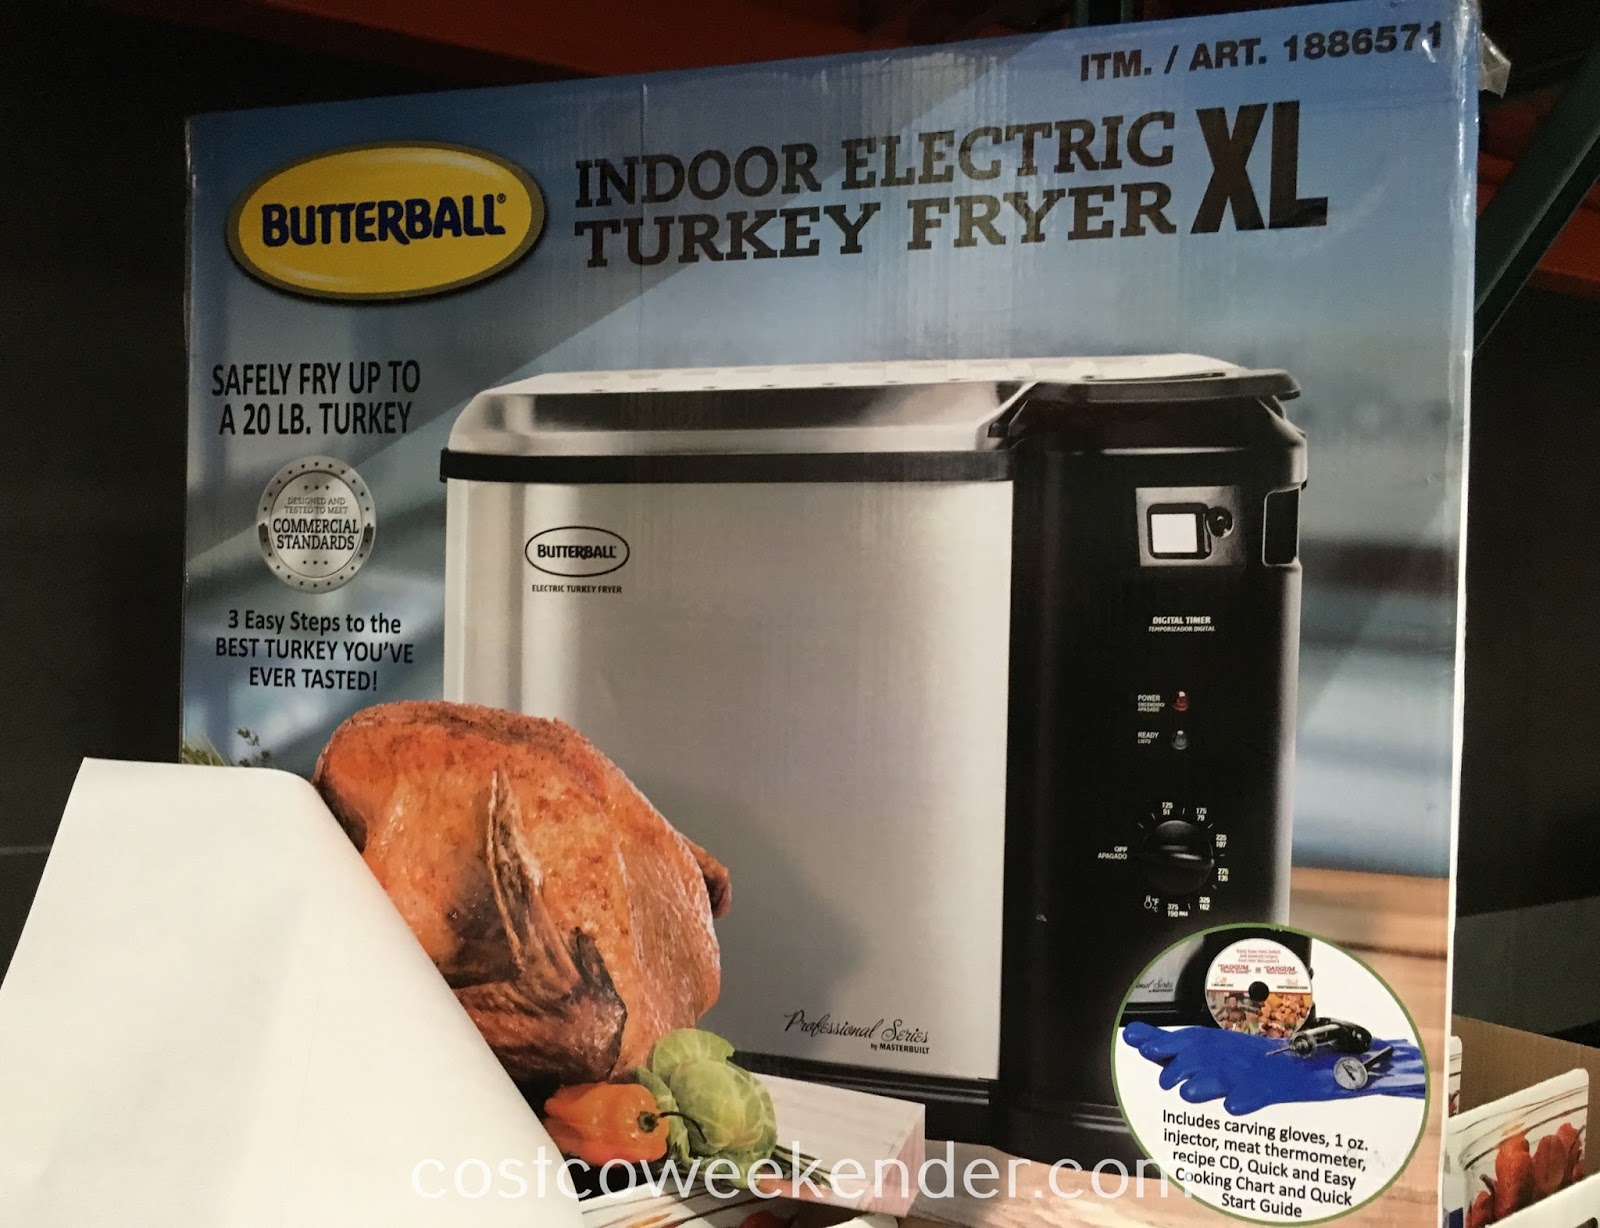 Deep fry a turkey for Thanksgiving with the Butterball 23011815 Indoor Electric Turkey Fryer XL